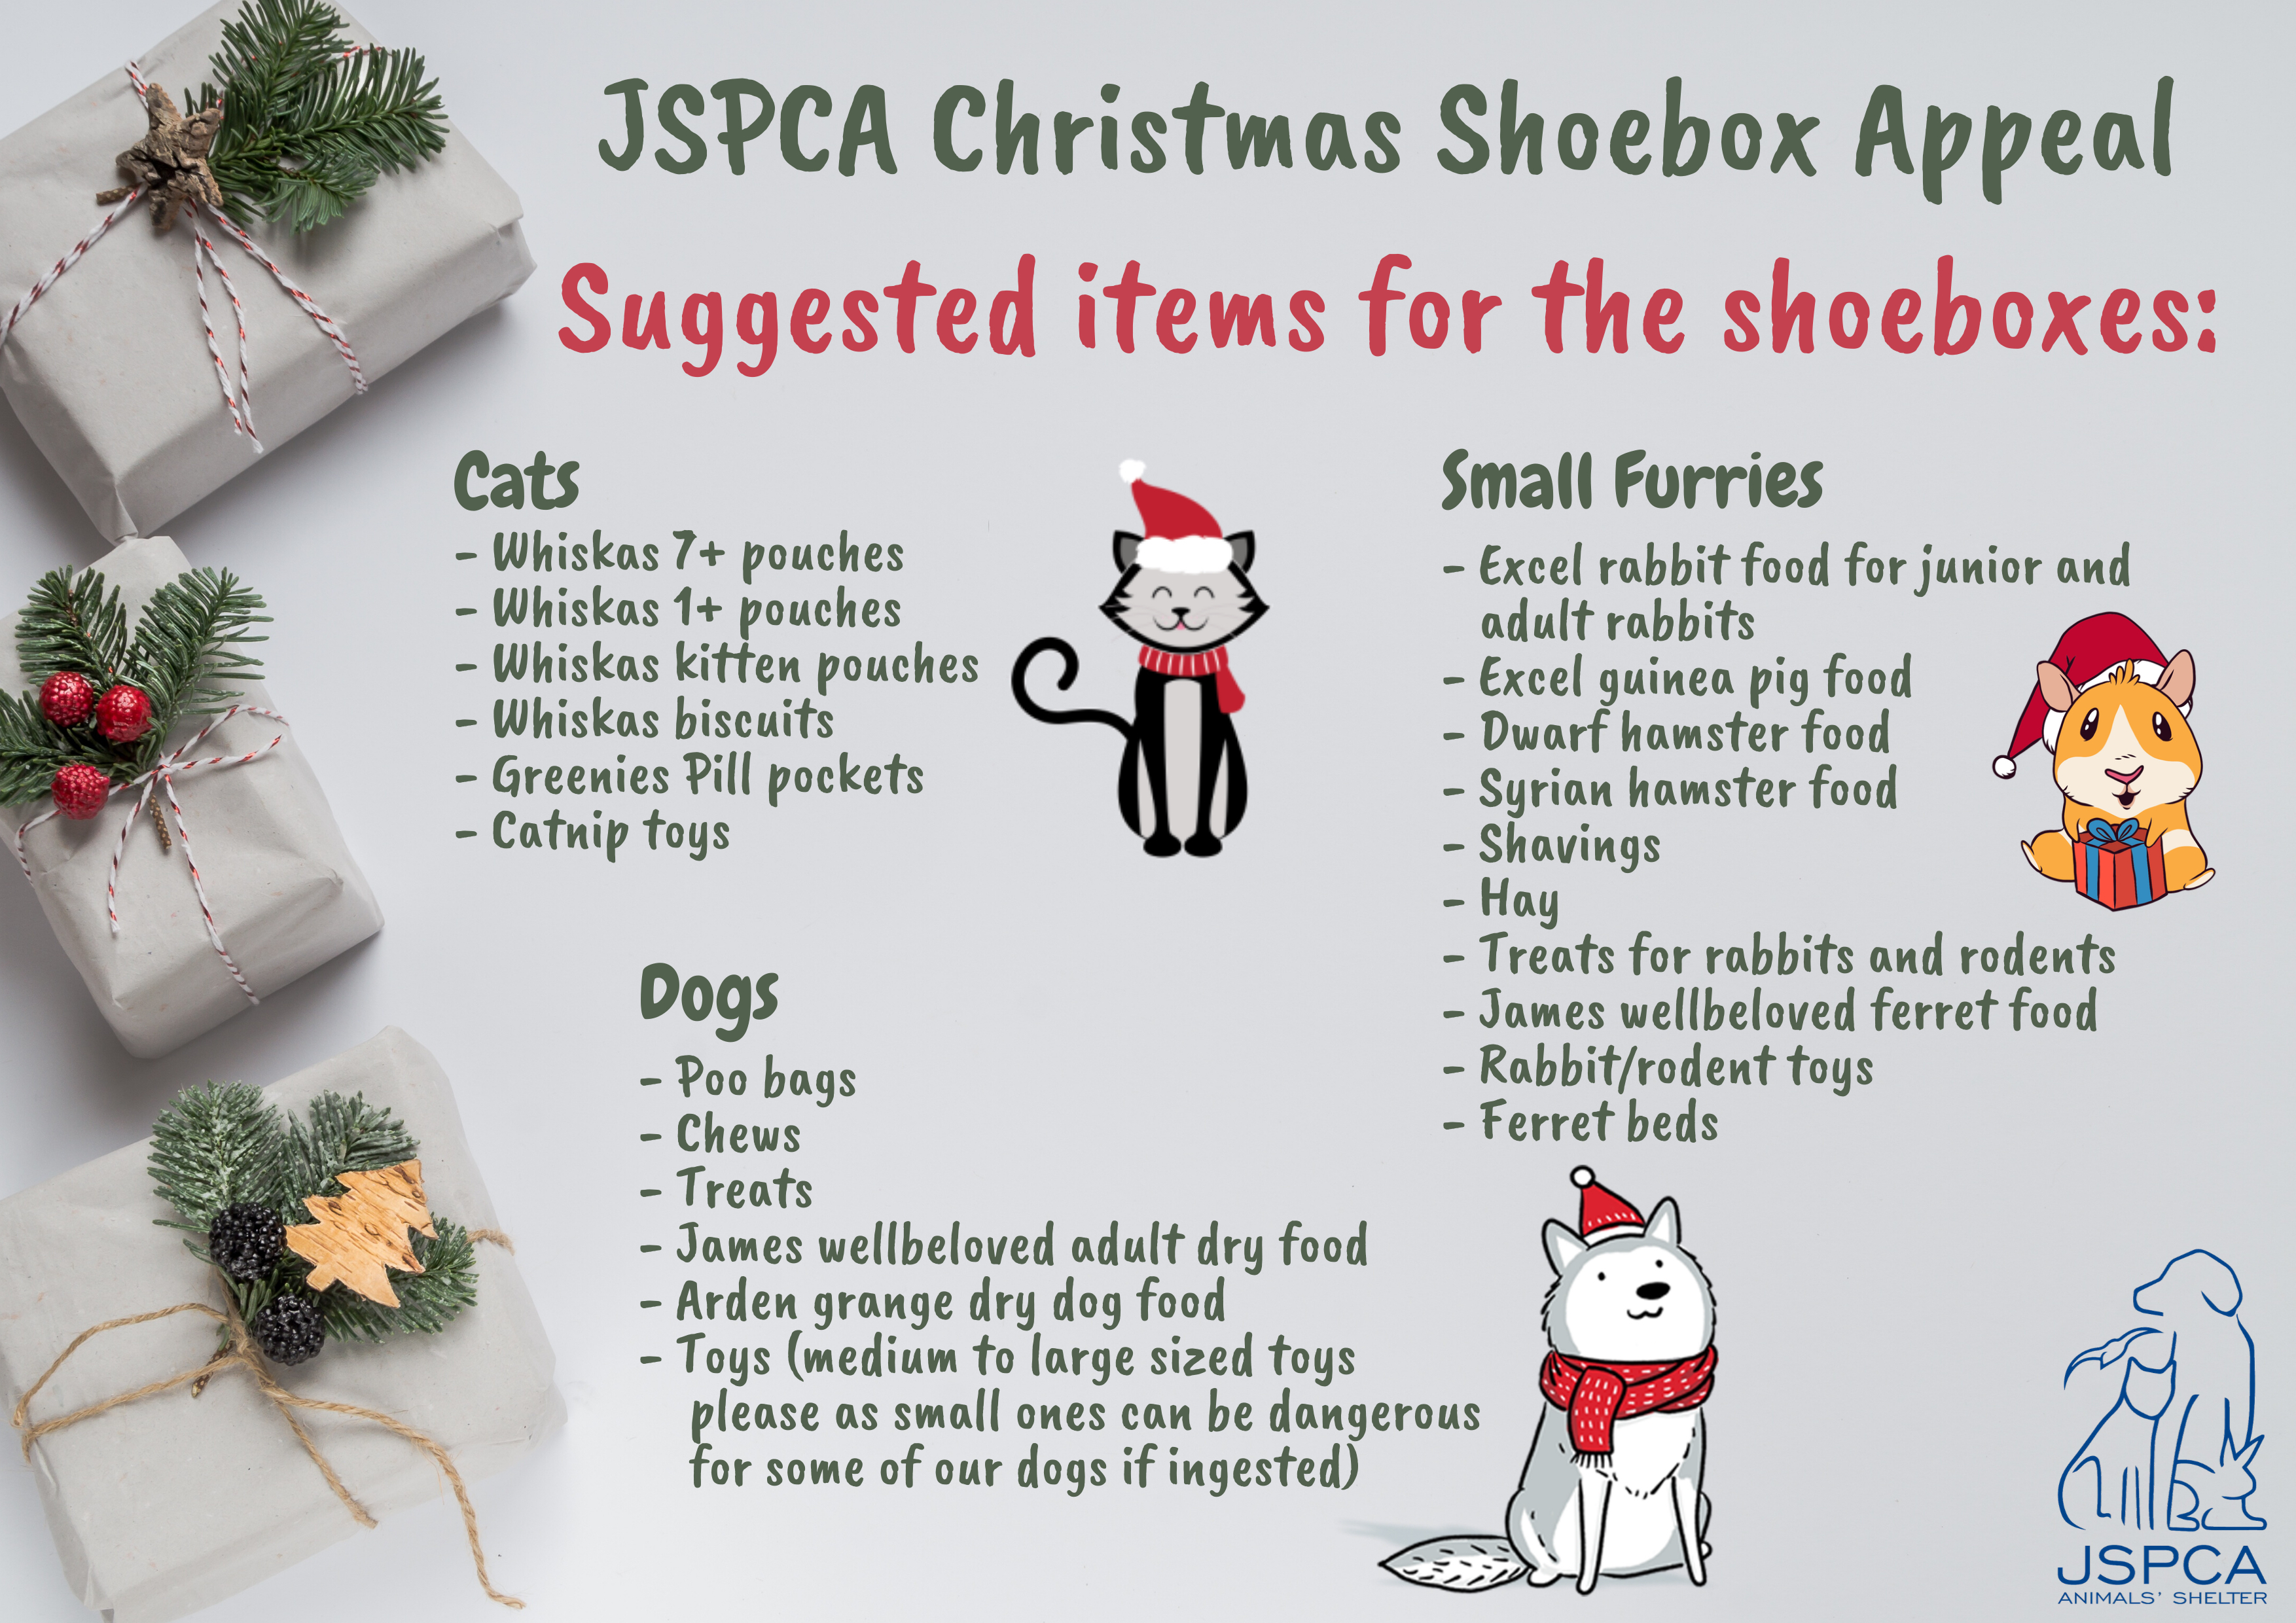 JSPCA-Christmas-Shoebox-Appeal-Suggested-Items.jpg